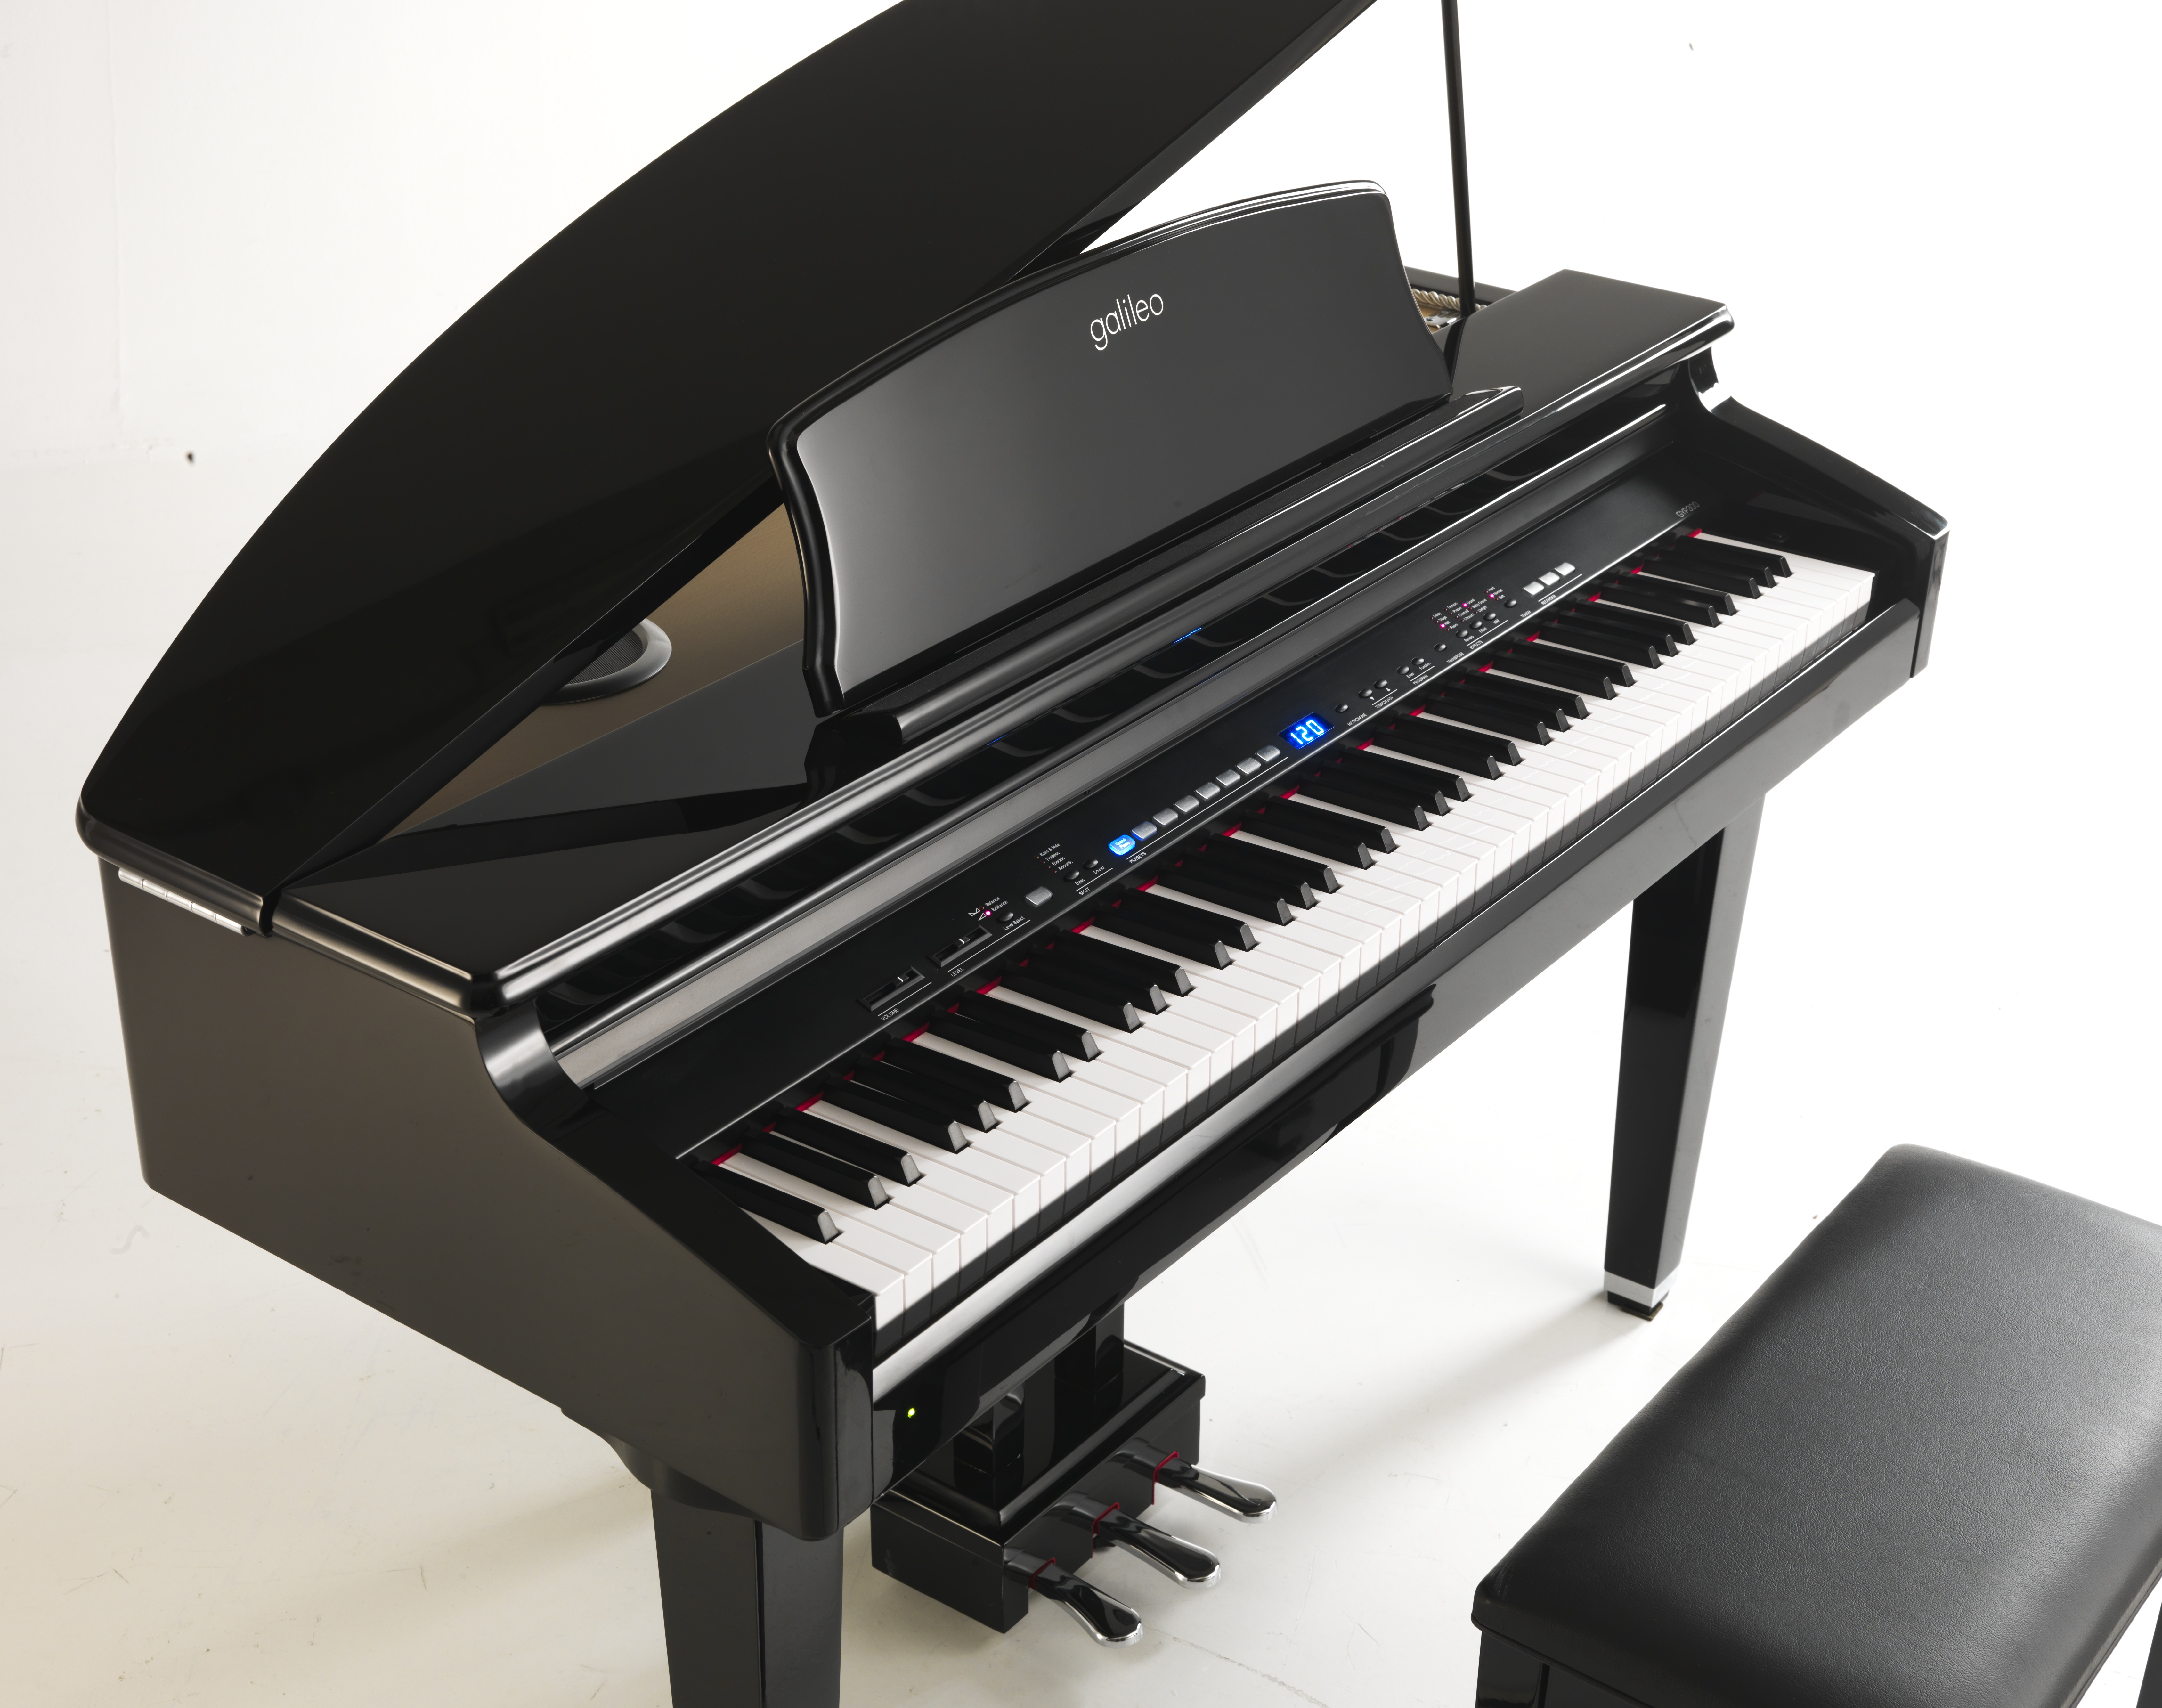 Galileo Pianos | Digital pianos in grand, vertical and portable ...